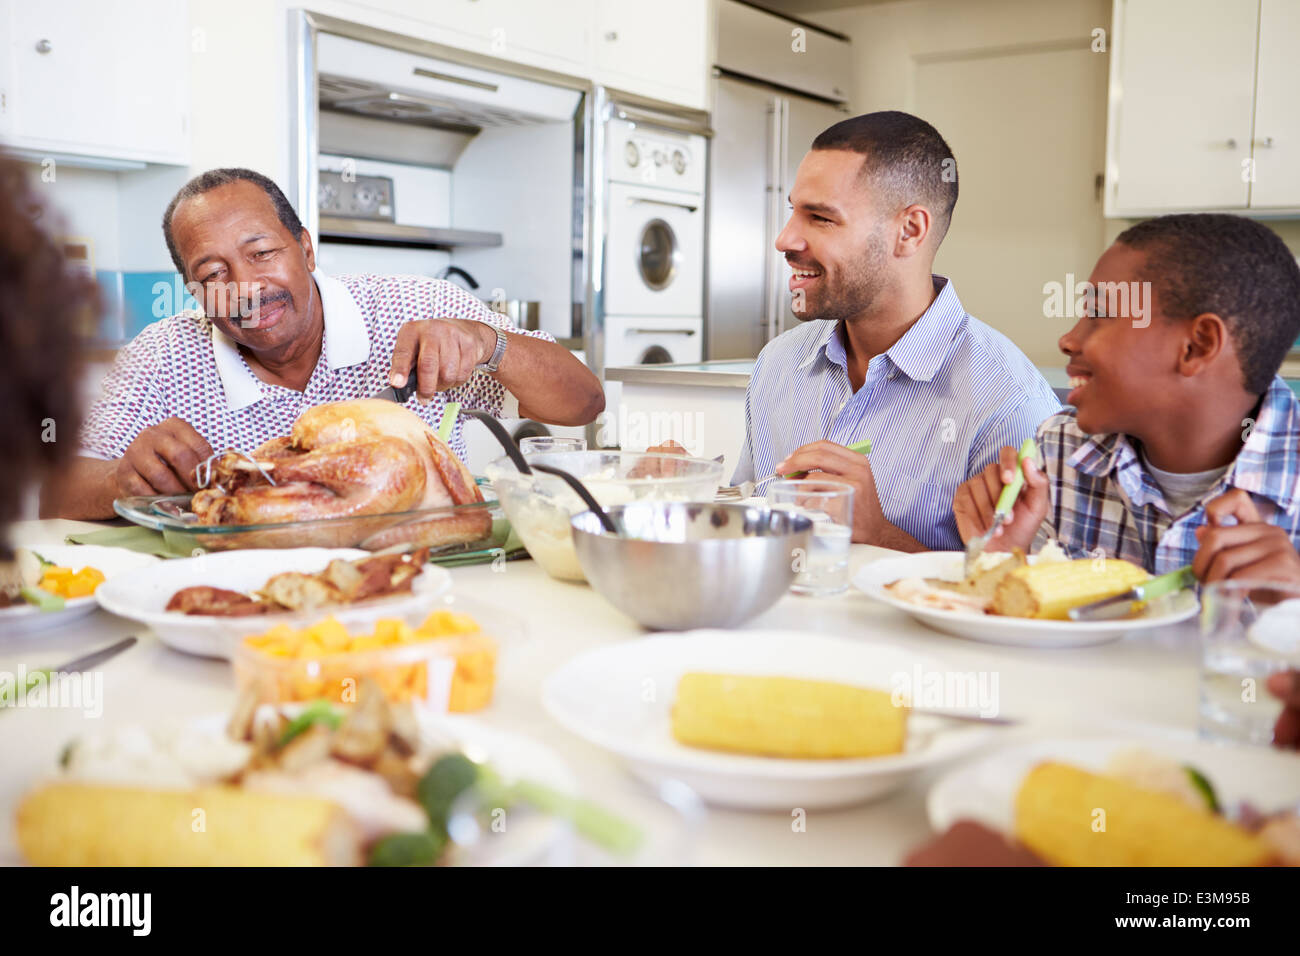 Multi-Generation Family Sitting Around Table Eating Meal - Stock Image